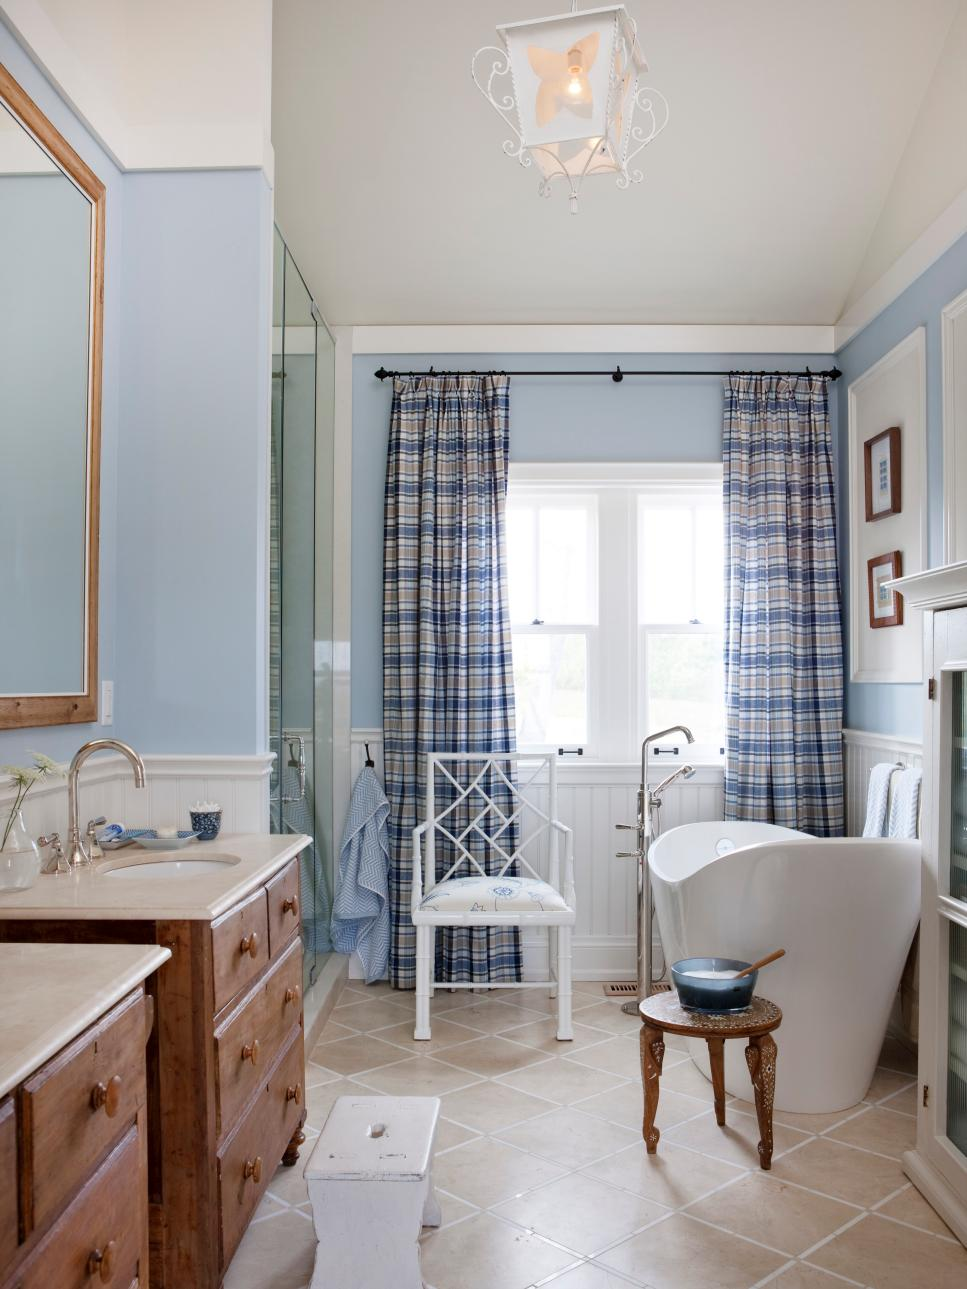 11 steps to a dream bathroom hgtv - Design For Bathrooms